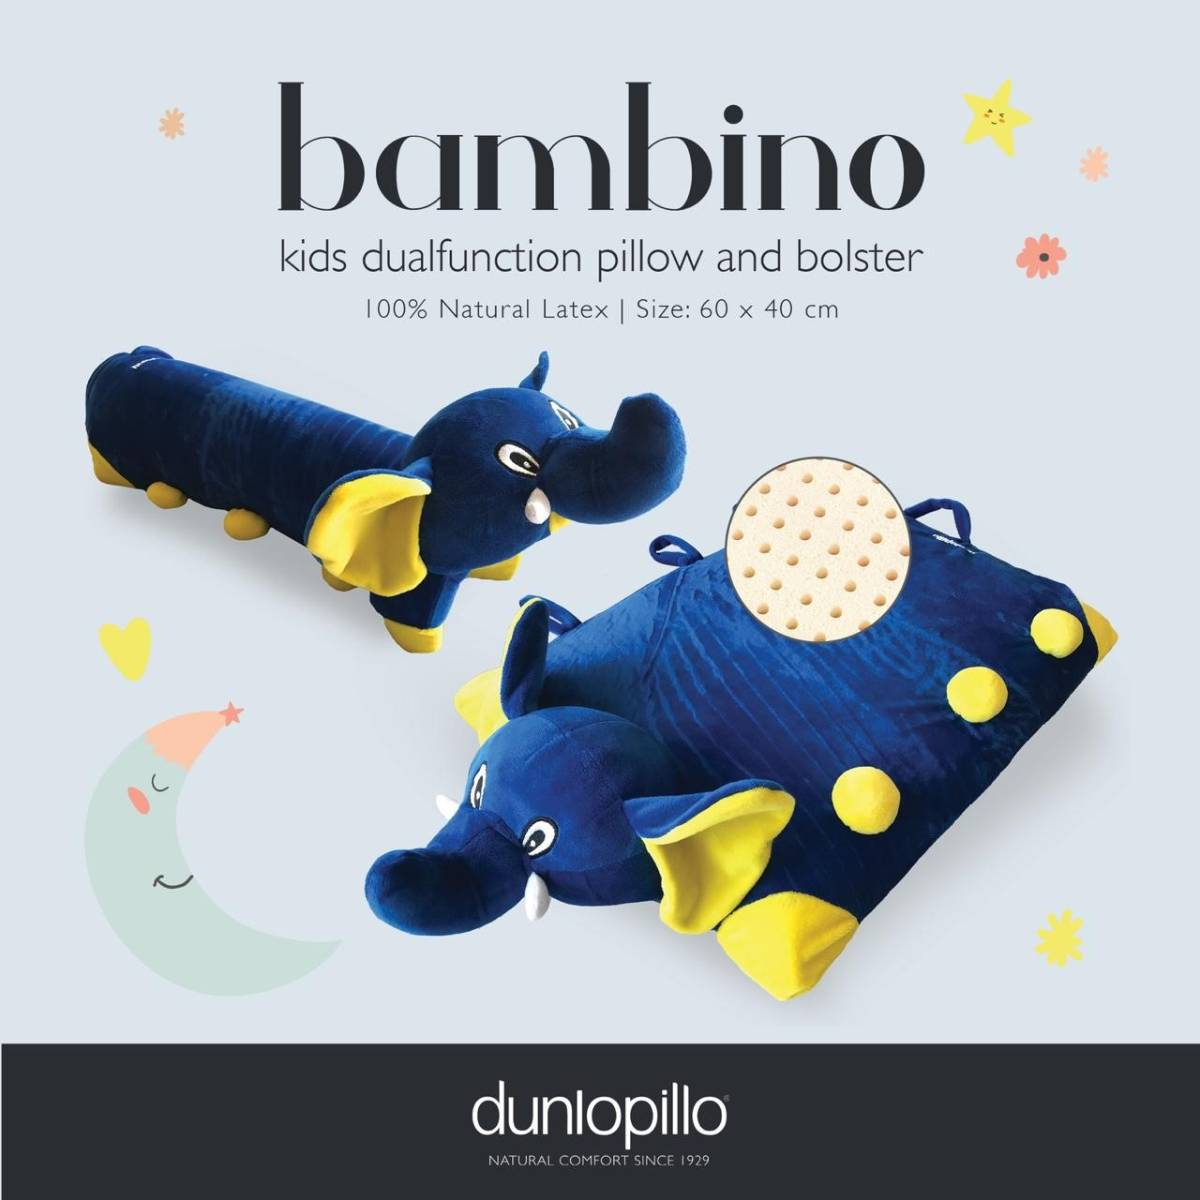 Dunlopillo Bambino Latex multifunction 2 in 1 (Bantal Guling)1